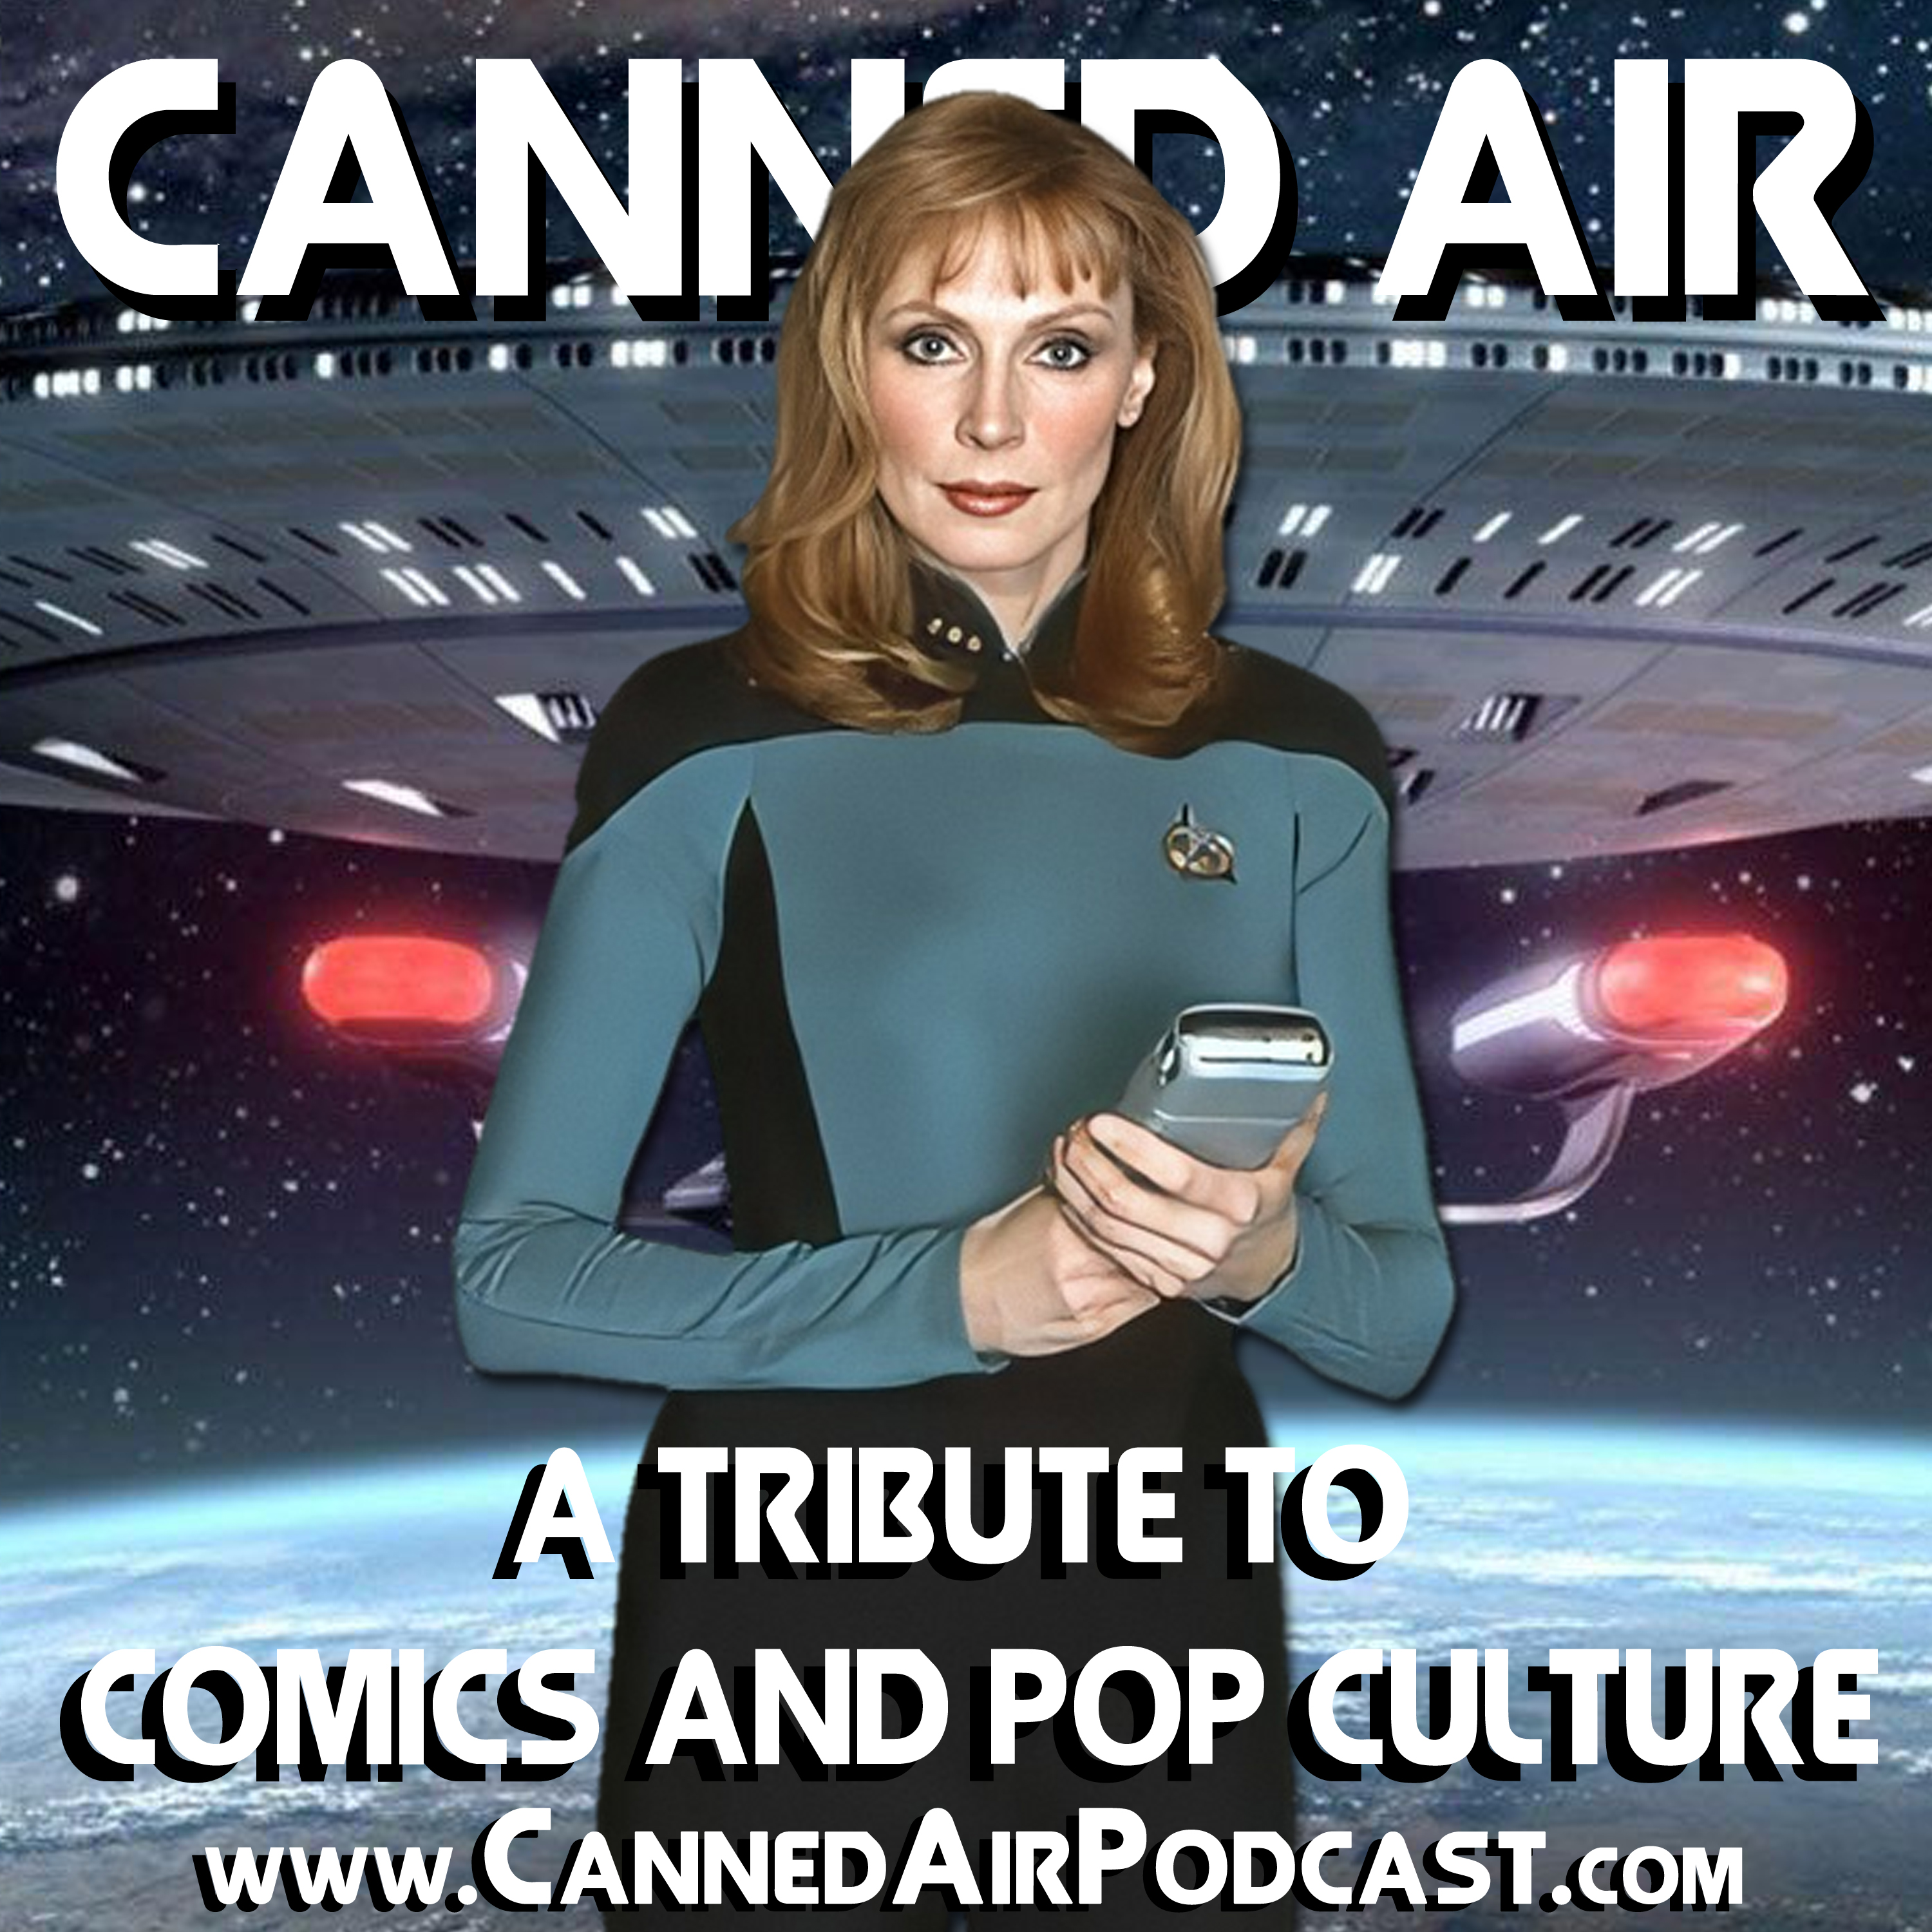 Canned Air #363 A Conversation with Gates McFadden (Dr. Beverly Crusher of Star Trek) show art